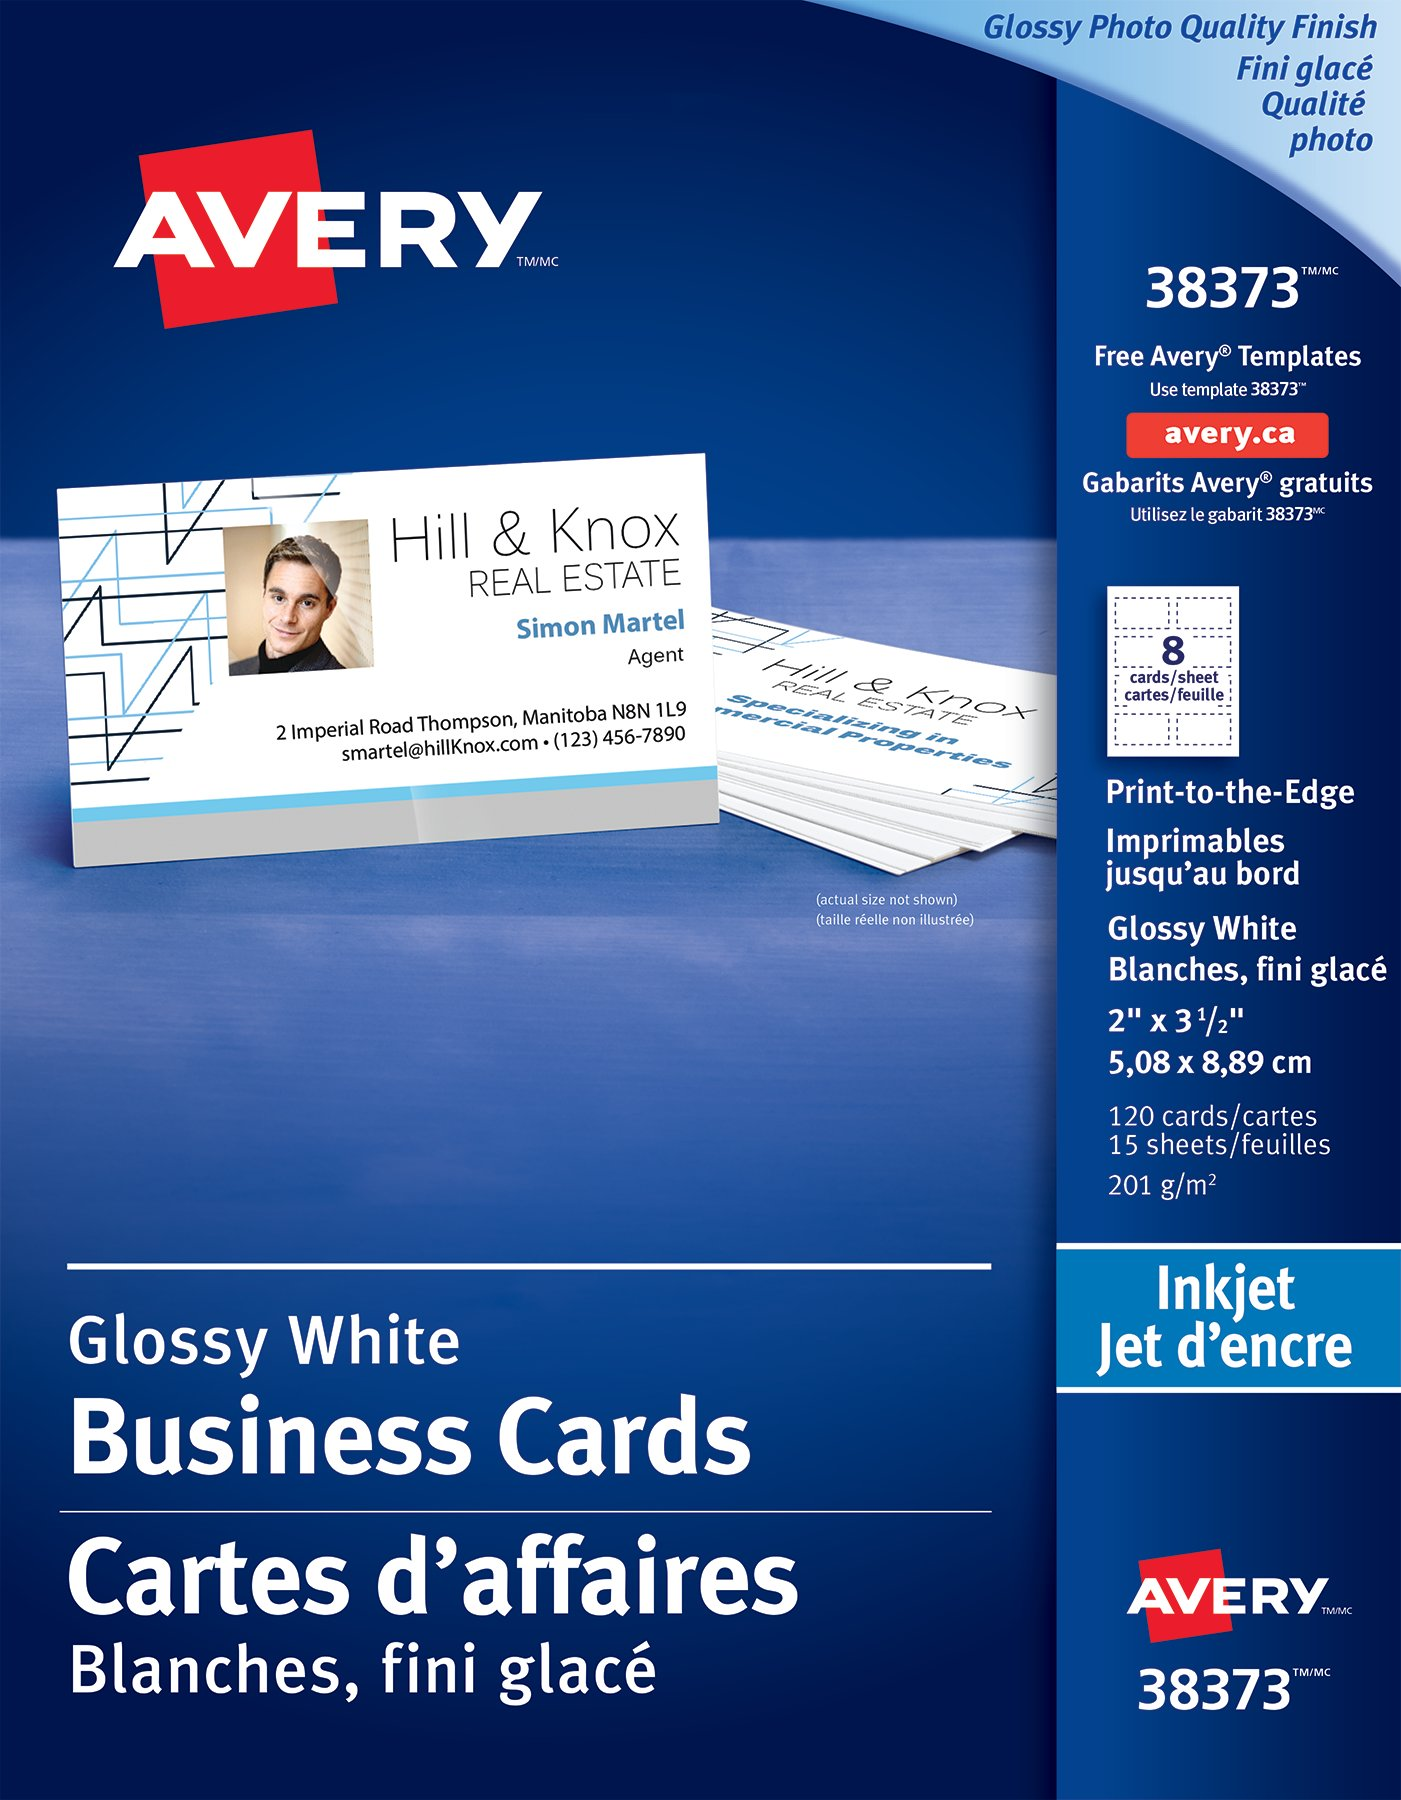 Business cards make your own online custom business card printing avery glossy photo quality business cards 38373 2 x 3 rectangle reheart Image collections